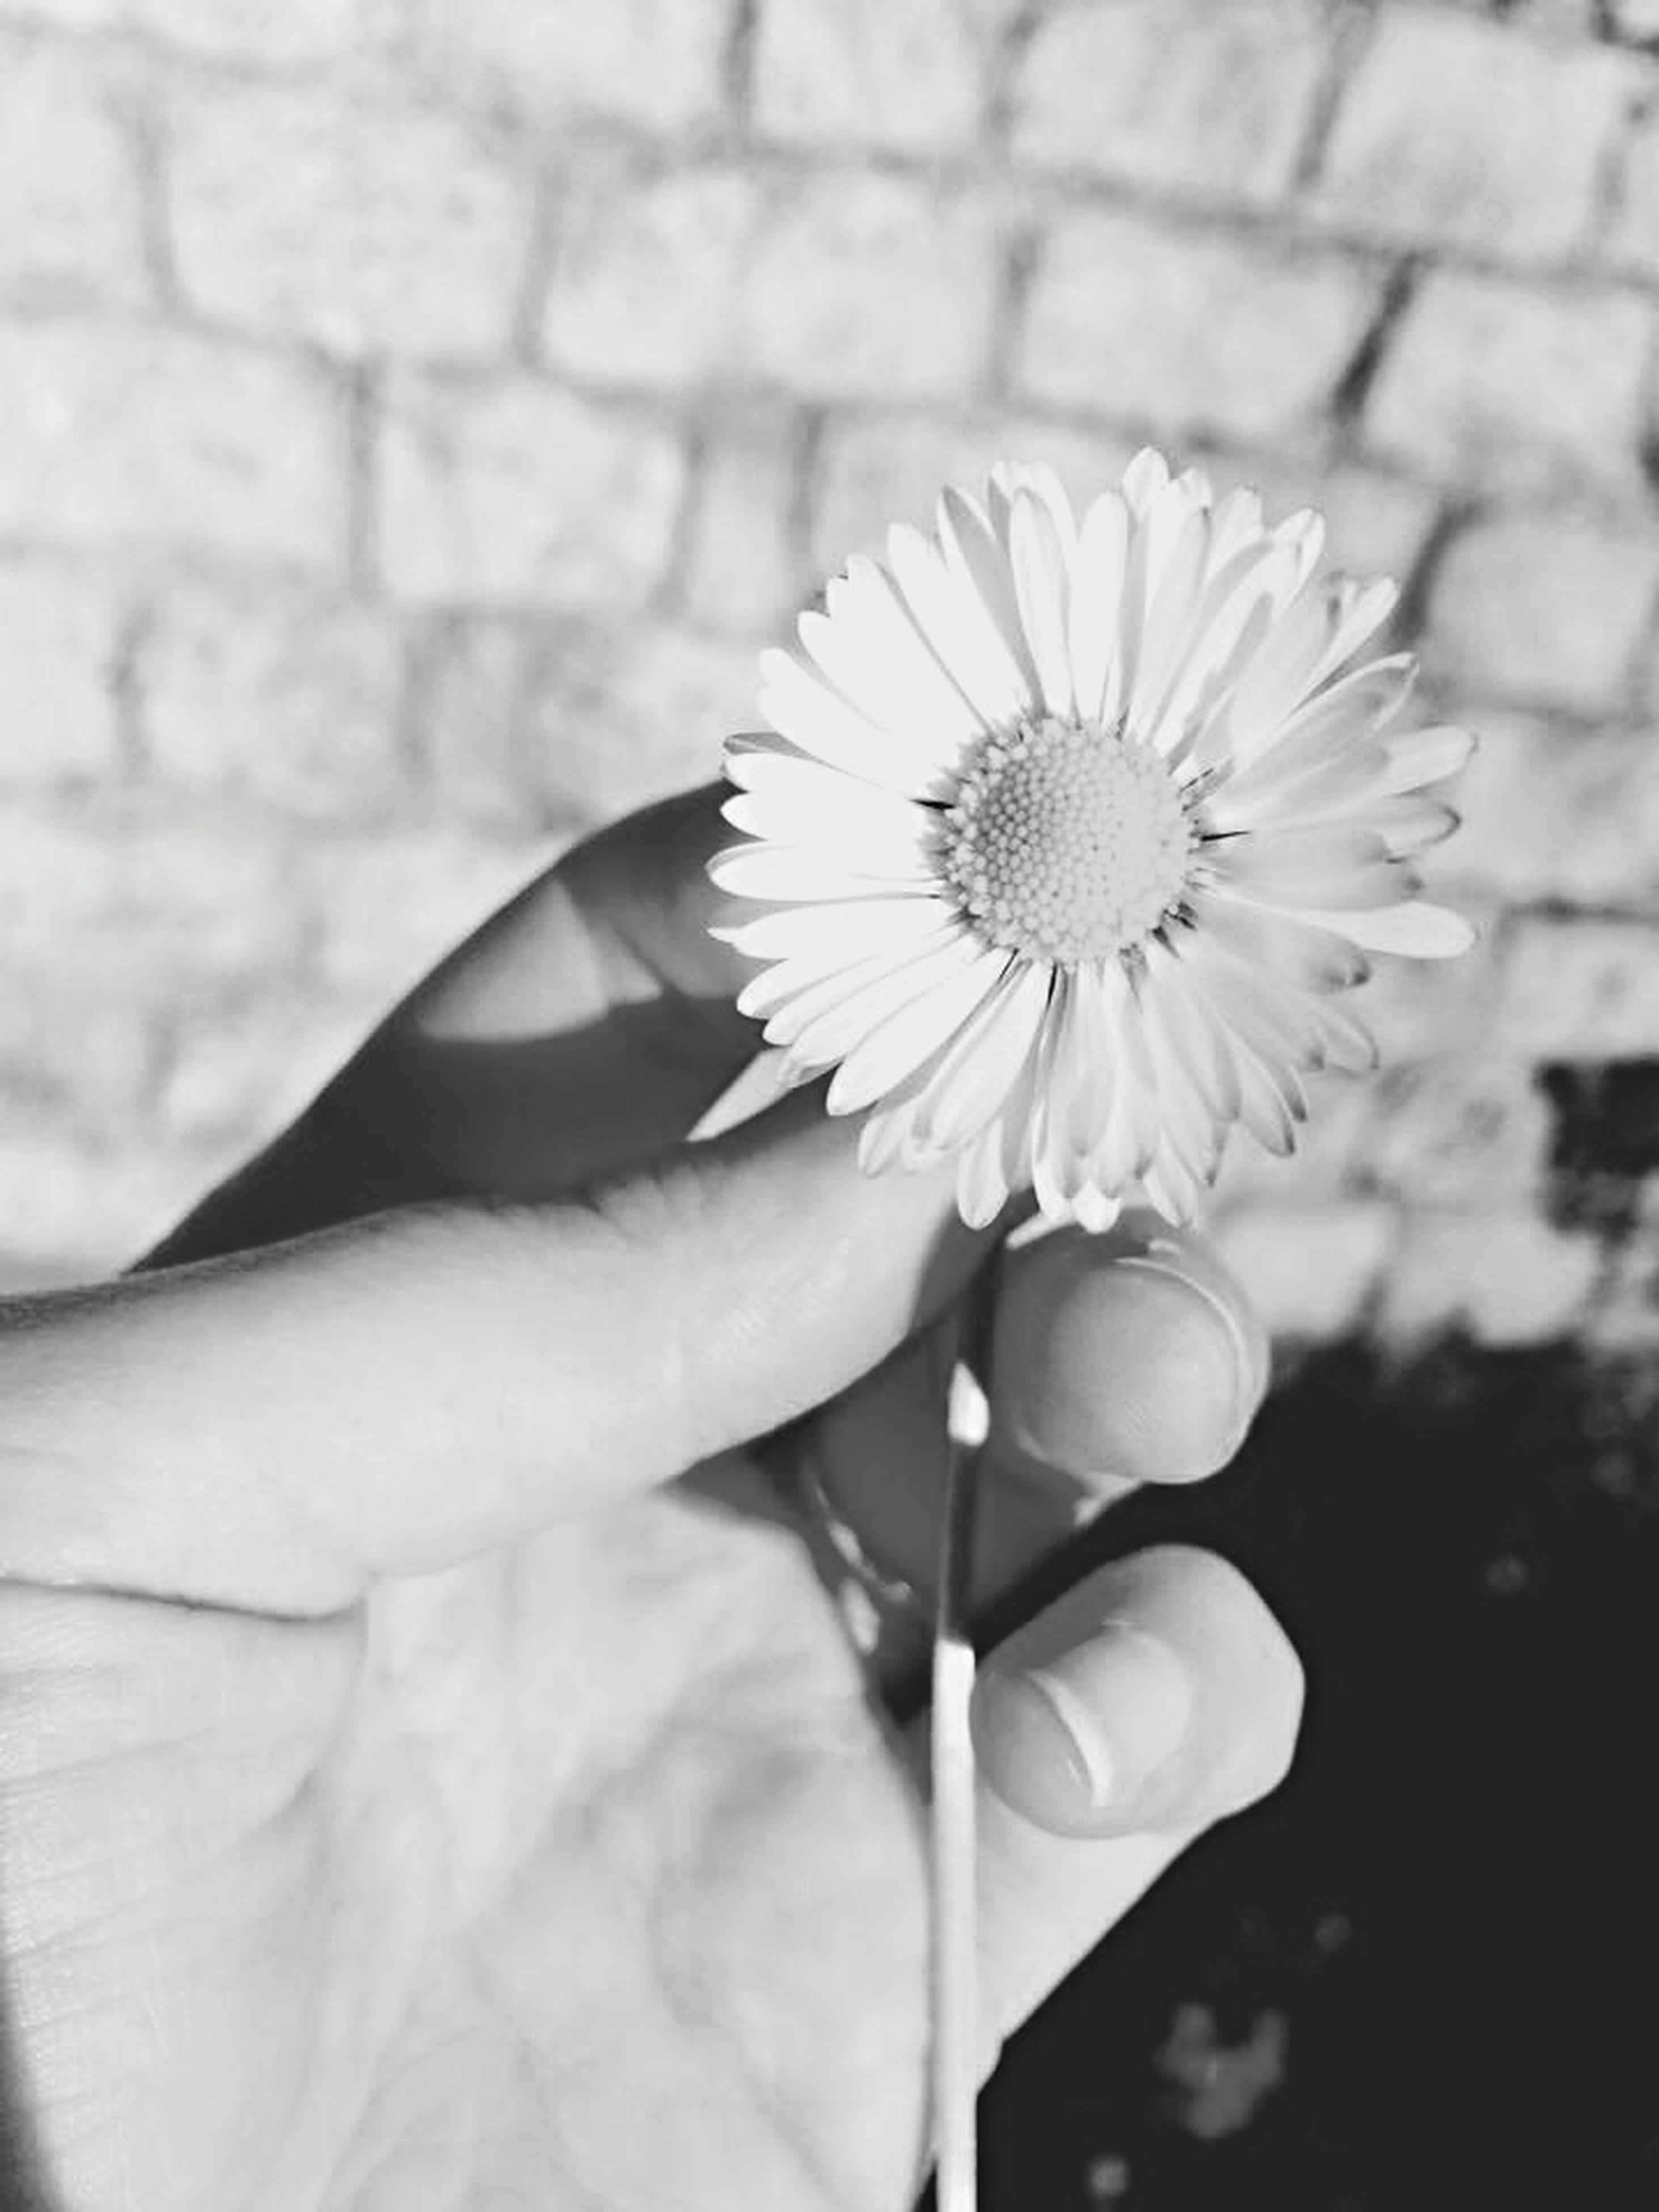 flower, person, freshness, flower head, fragility, petal, holding, single flower, part of, focus on foreground, close-up, pollen, human finger, beauty in nature, cropped, daisy, white color